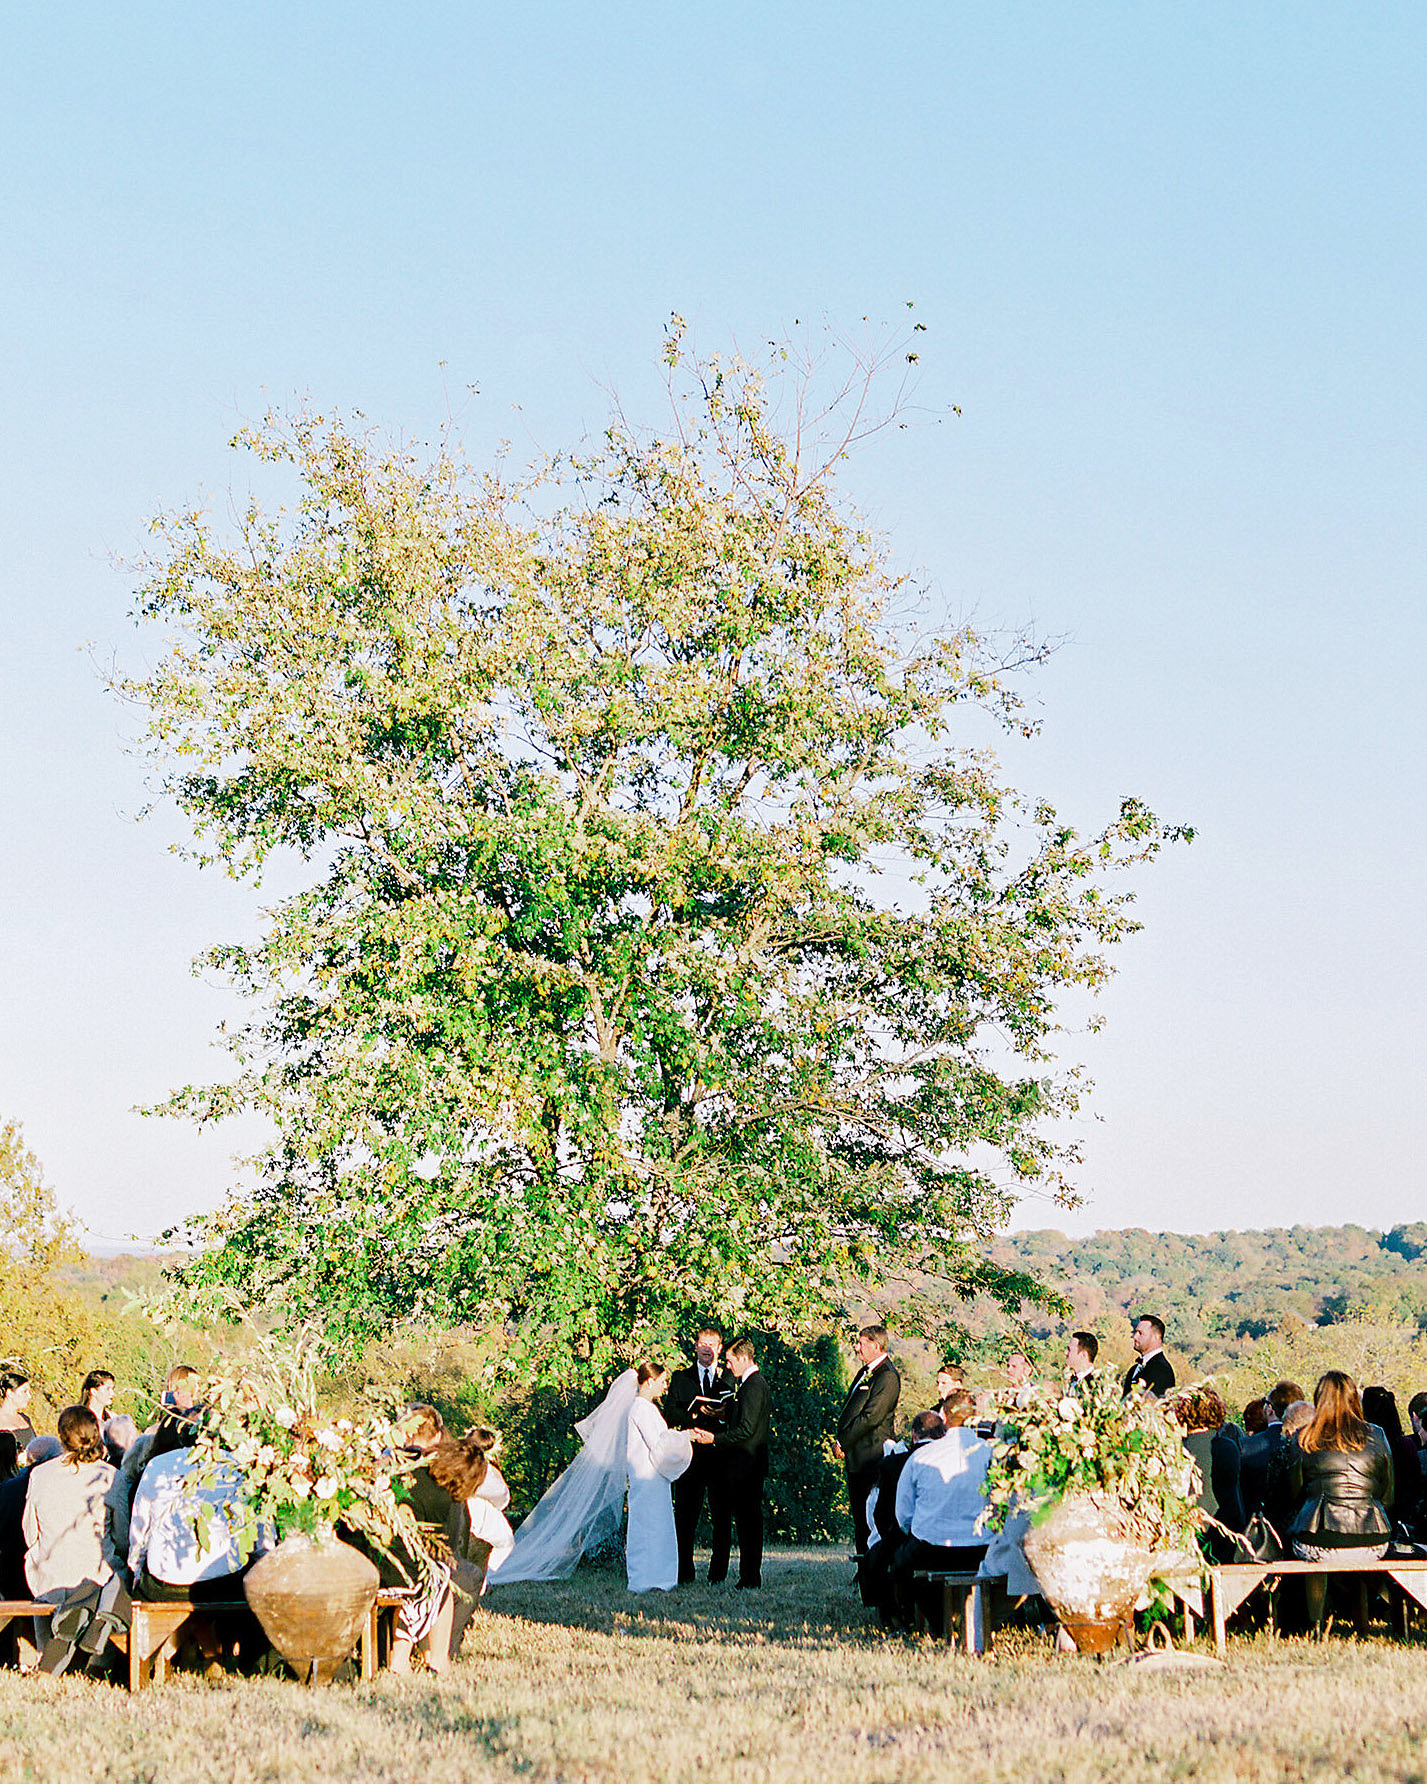 An Outdoor Ceremony